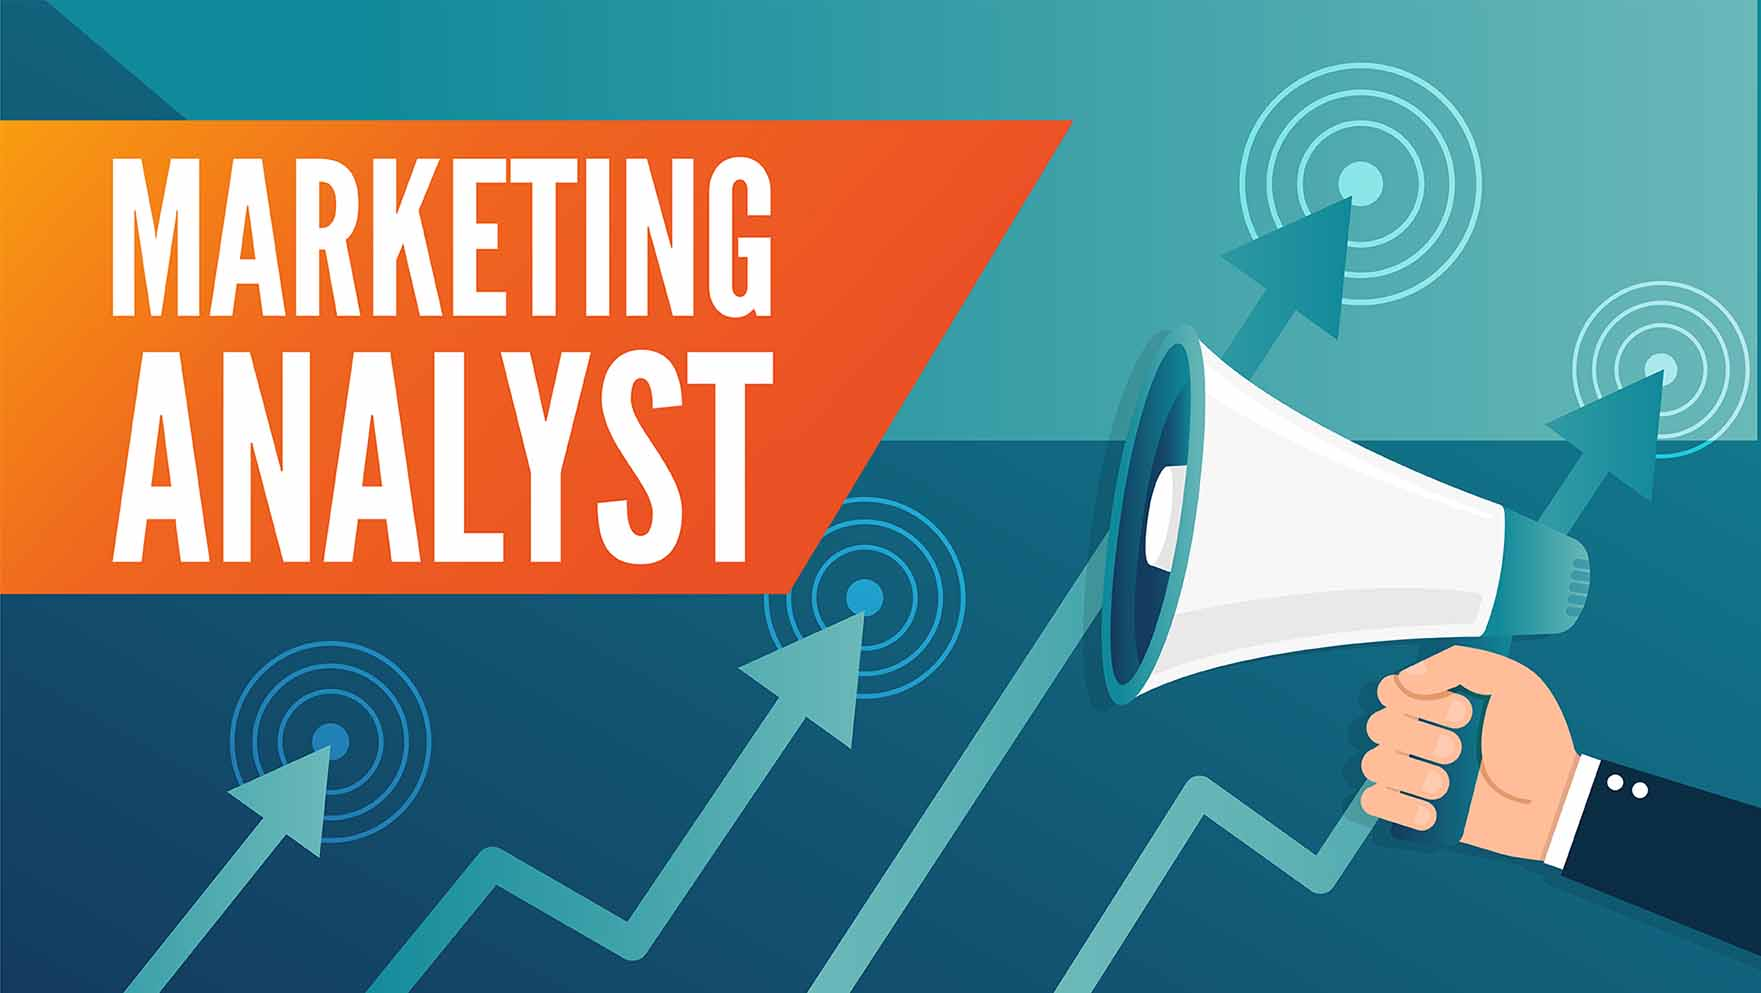 How to Become a Marketing Analyst?